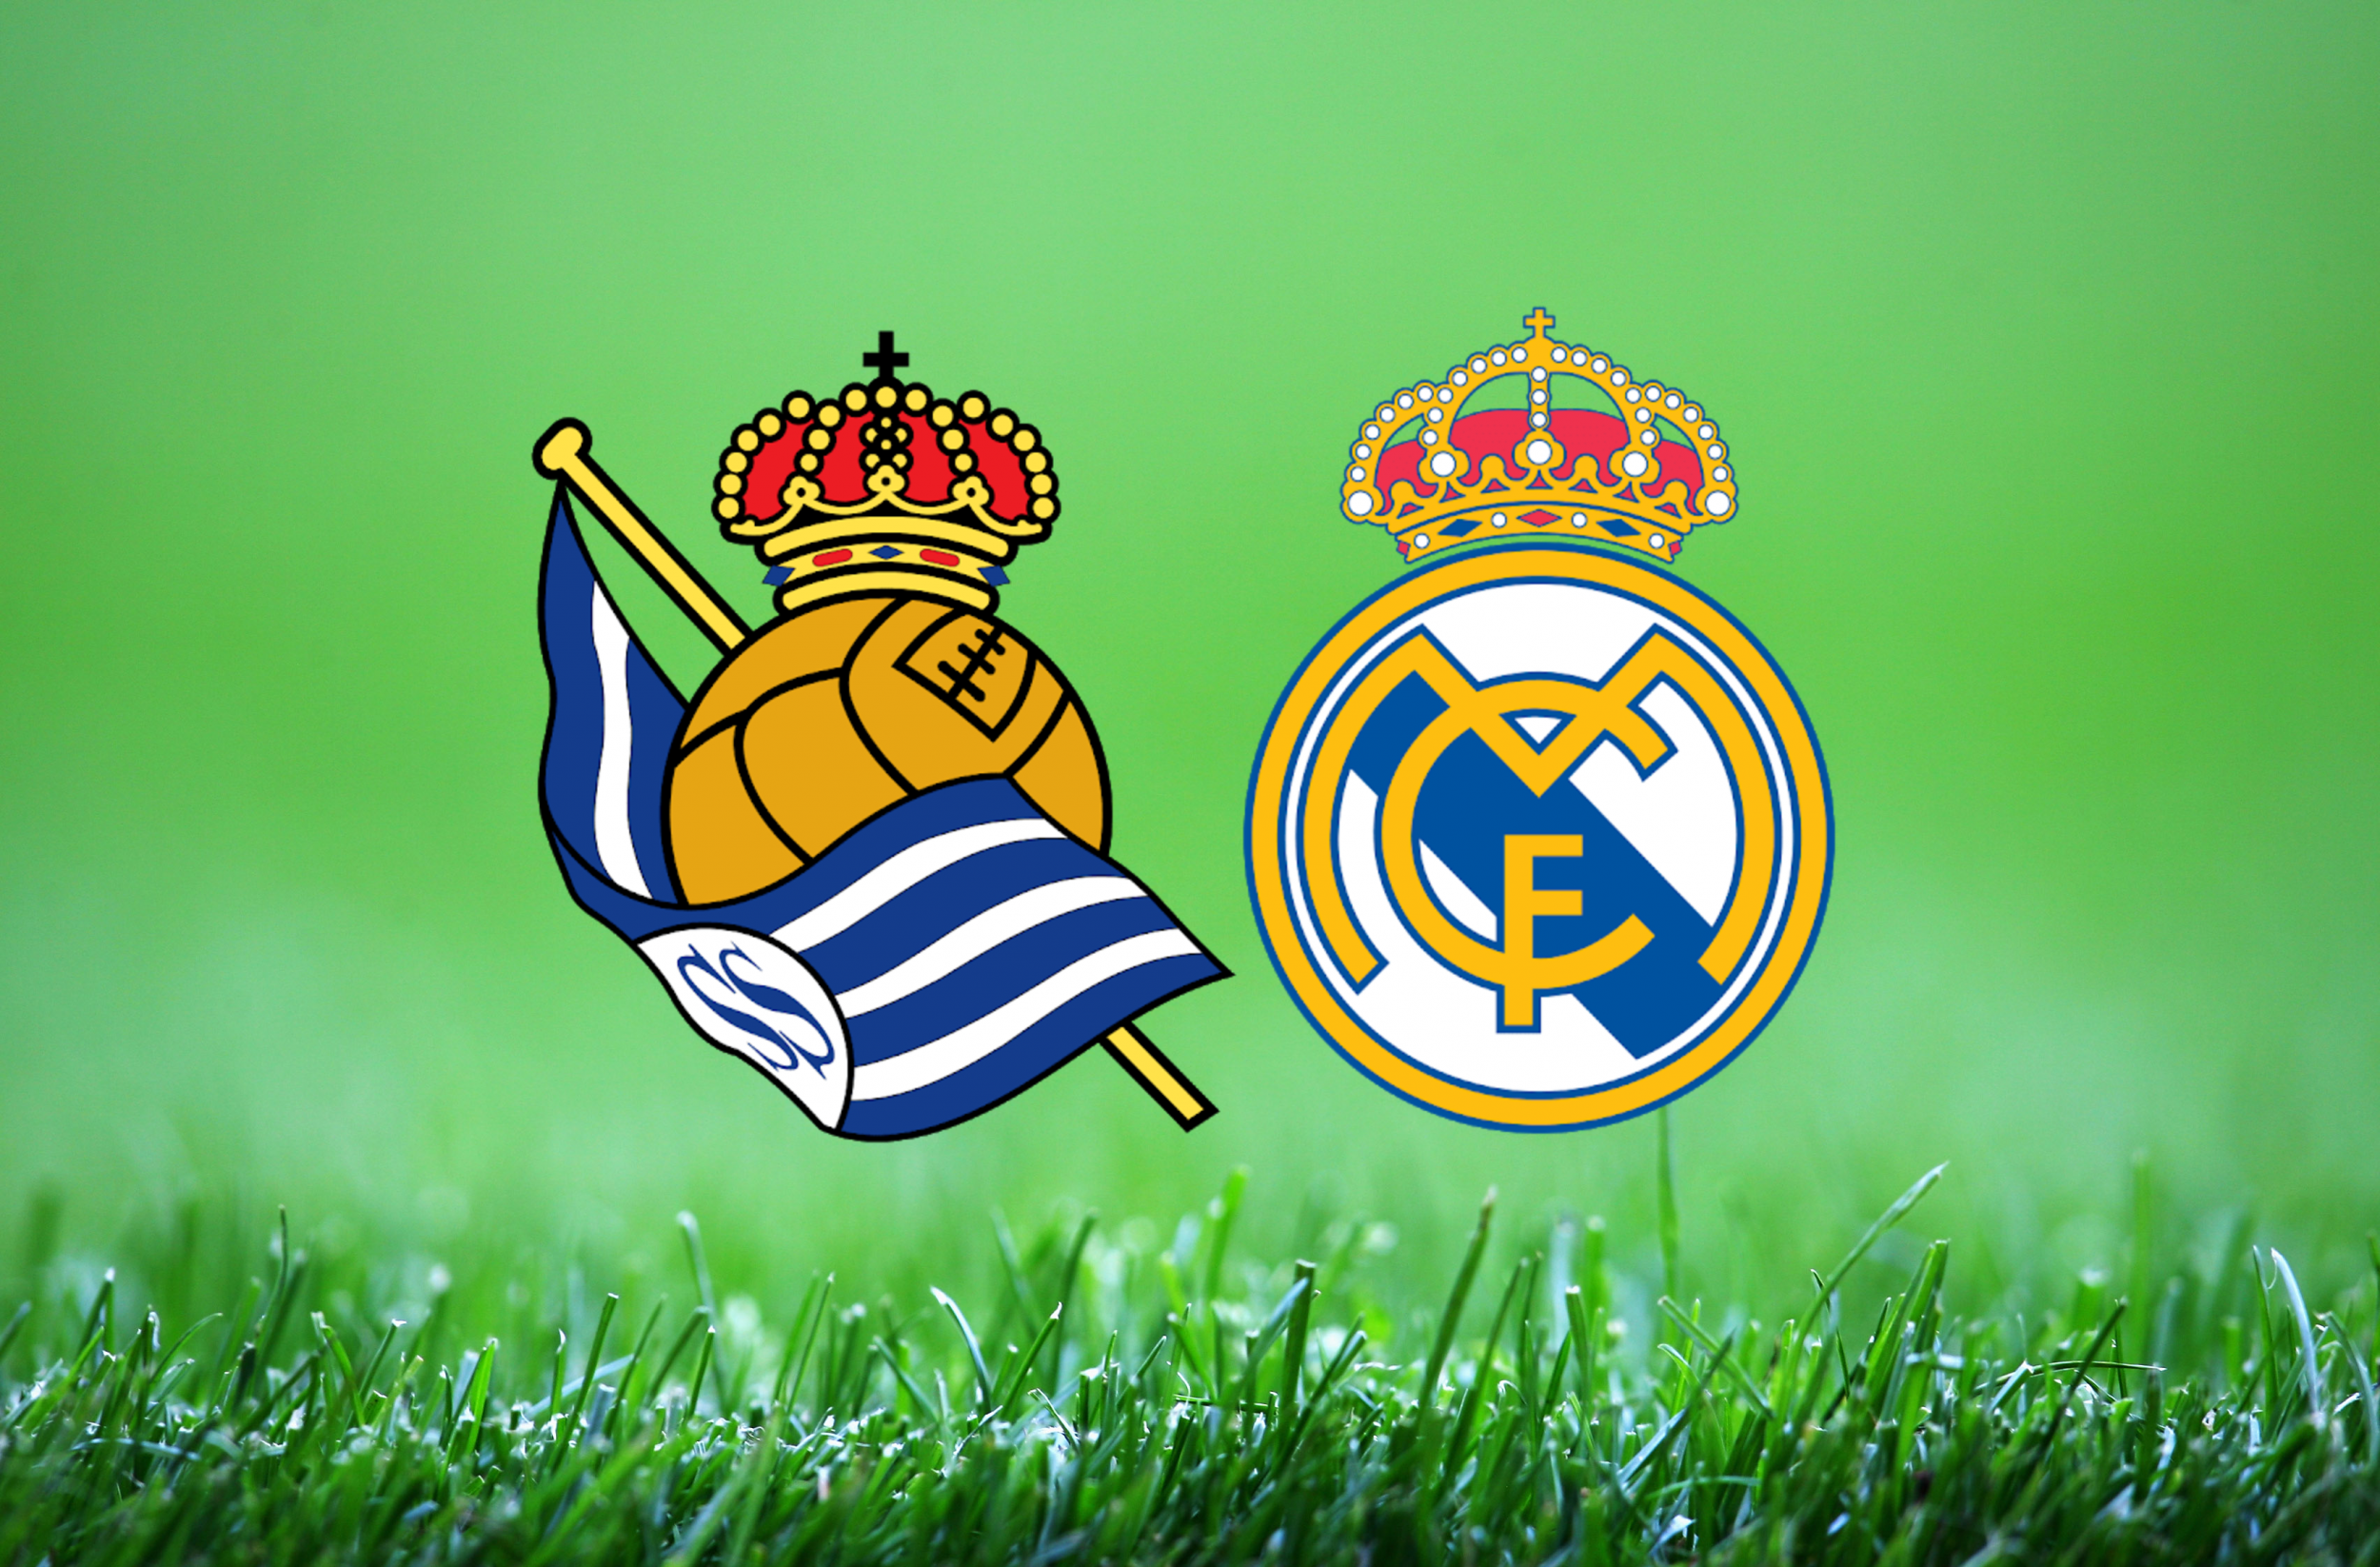 Real Sociedad Vs Real Madrid Live Latest Score Goal Updates Team News Tv And La Liga Match Stream Today London Business Post